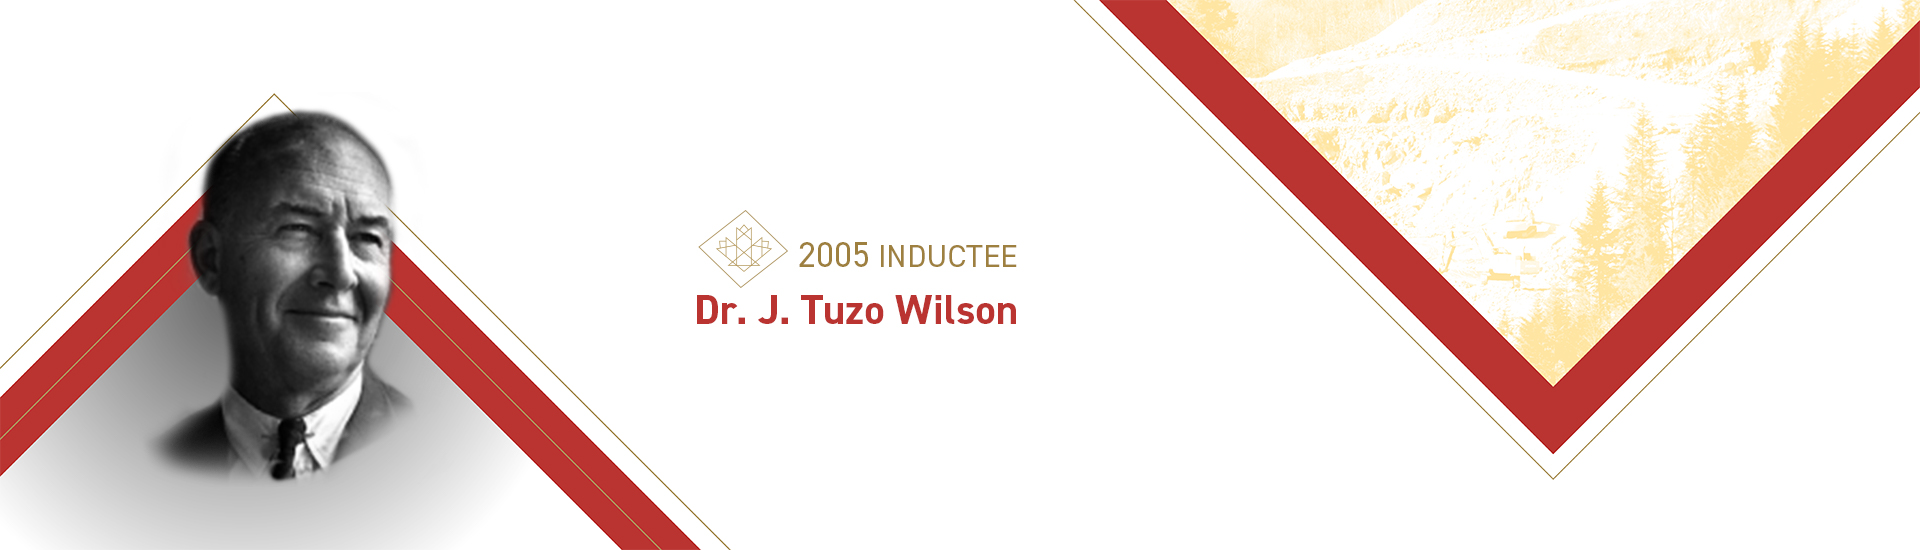 Canadian Mining Hall of Fame | J  Tuzo Wilson